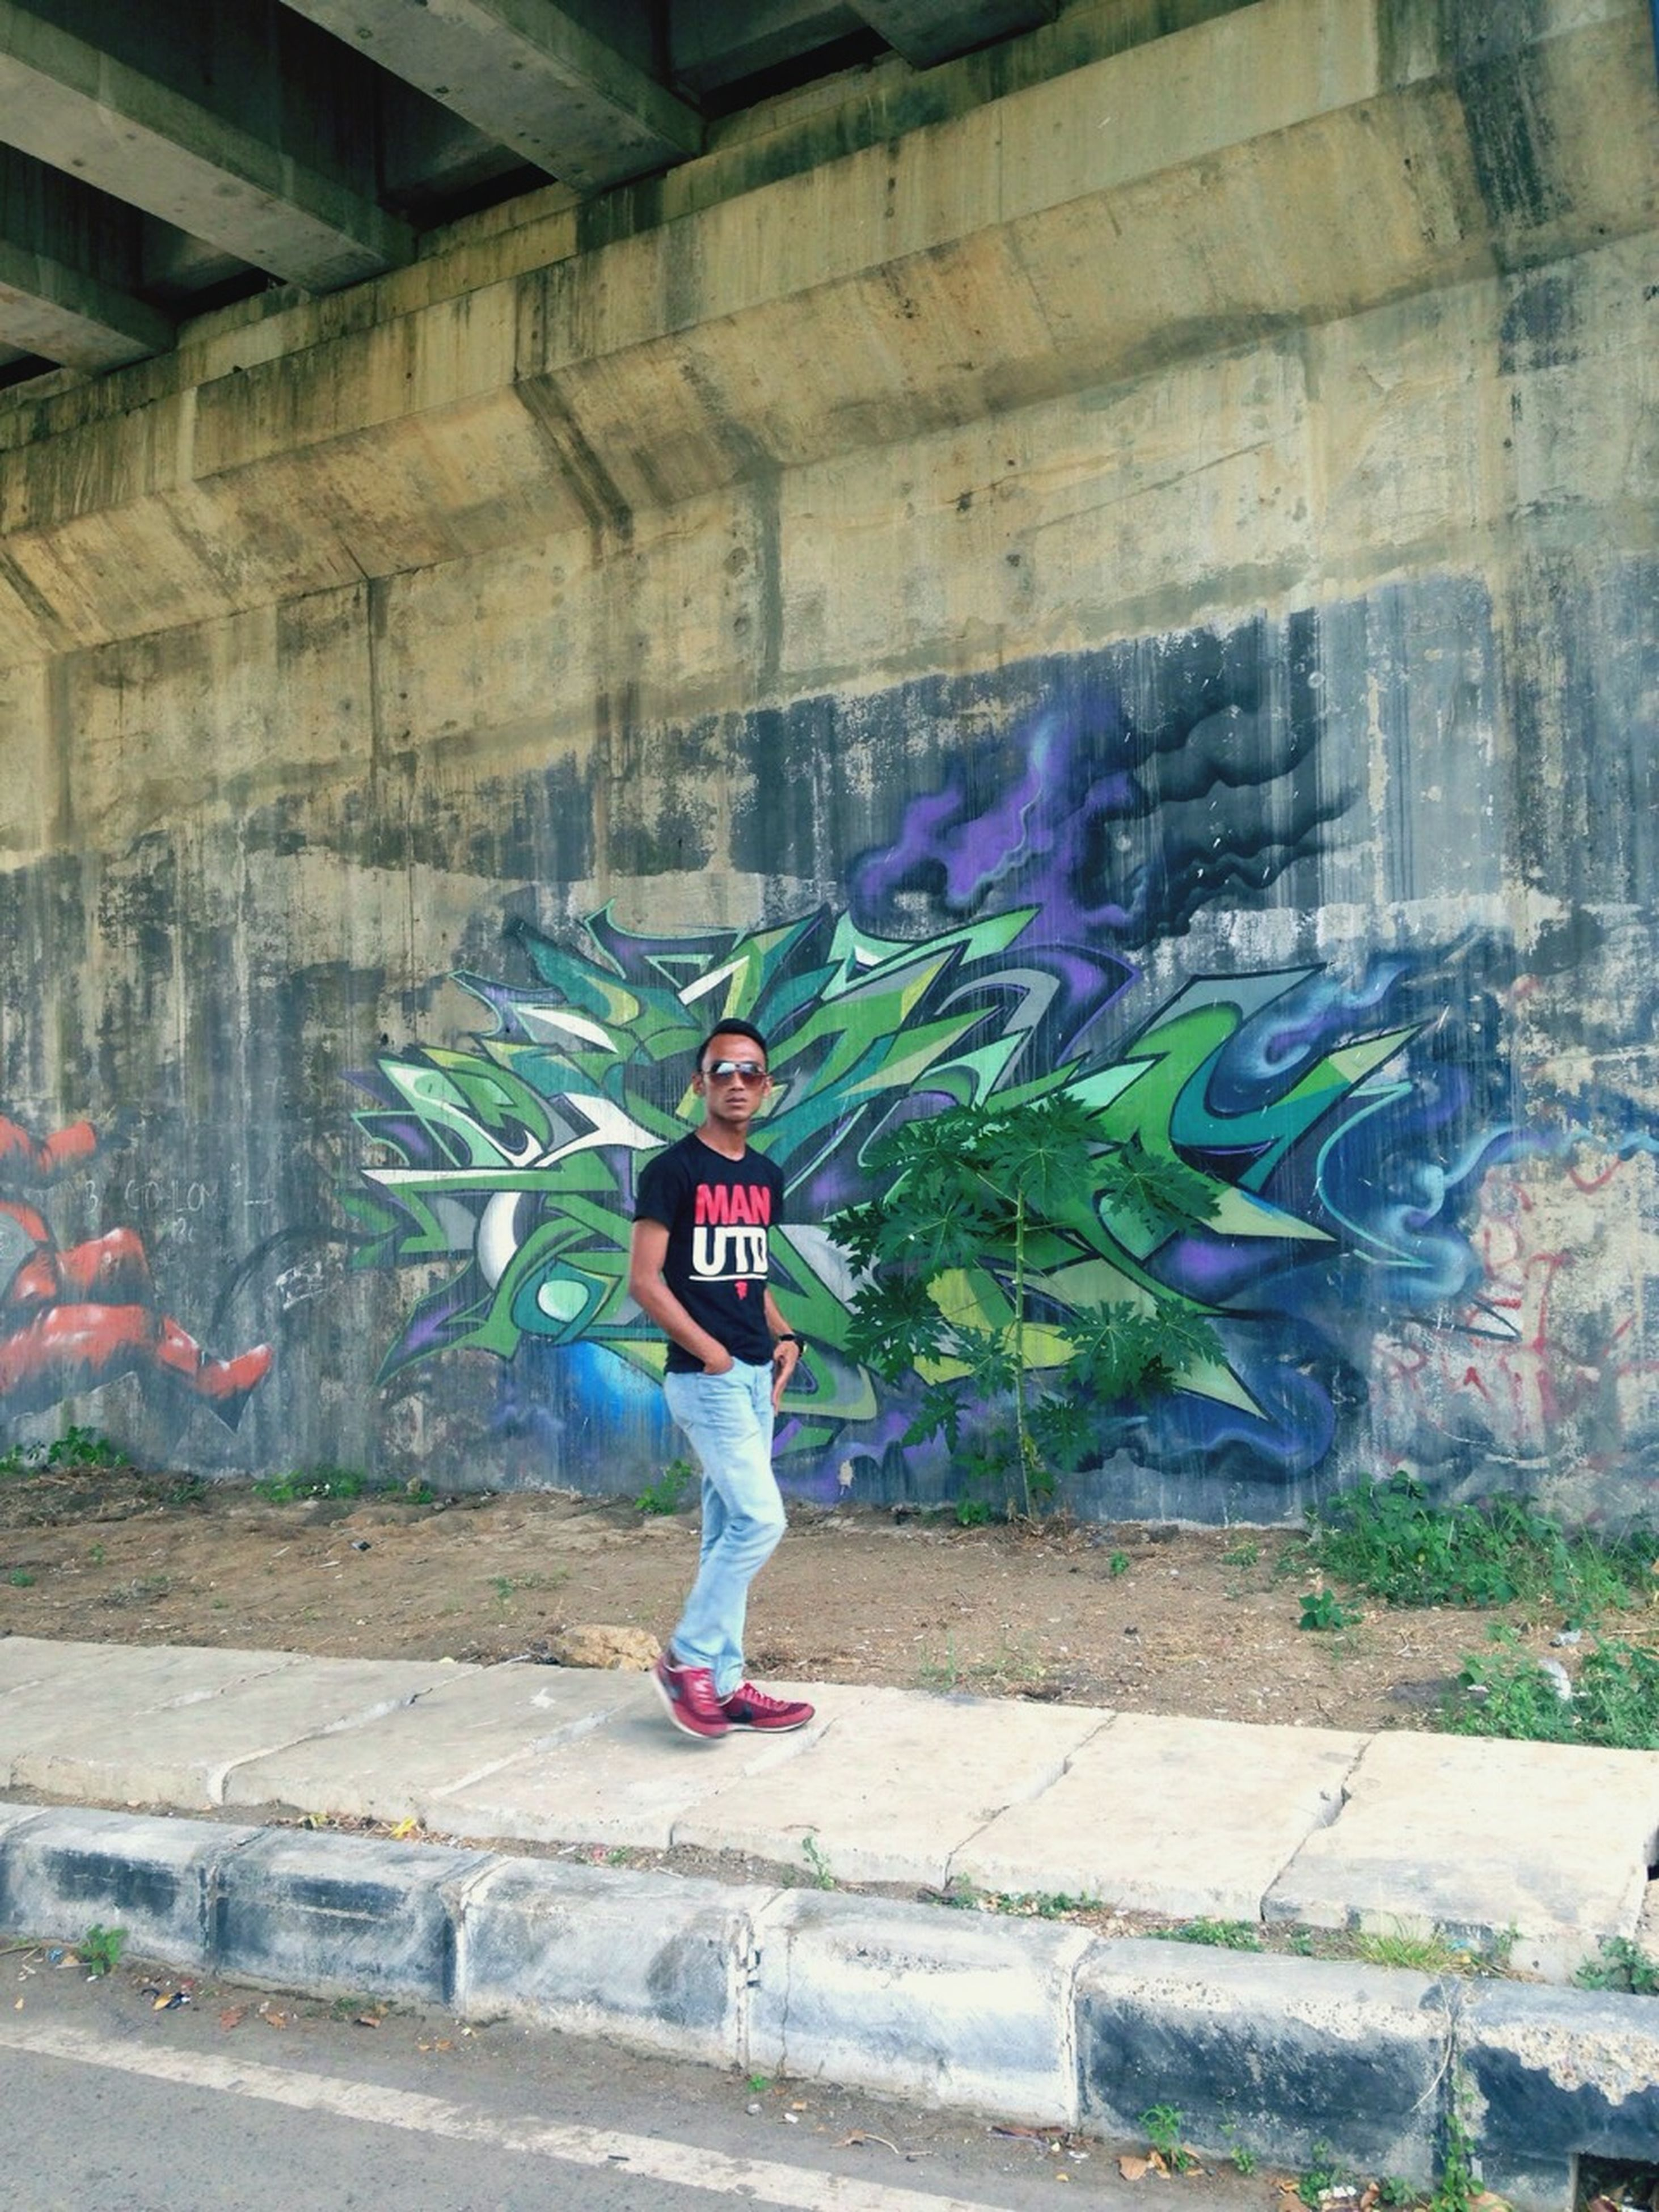 full length, graffiti, lifestyles, casual clothing, wall - building feature, person, built structure, architecture, leisure activity, front view, childhood, standing, building exterior, young adult, looking at camera, portrait, brick wall, art